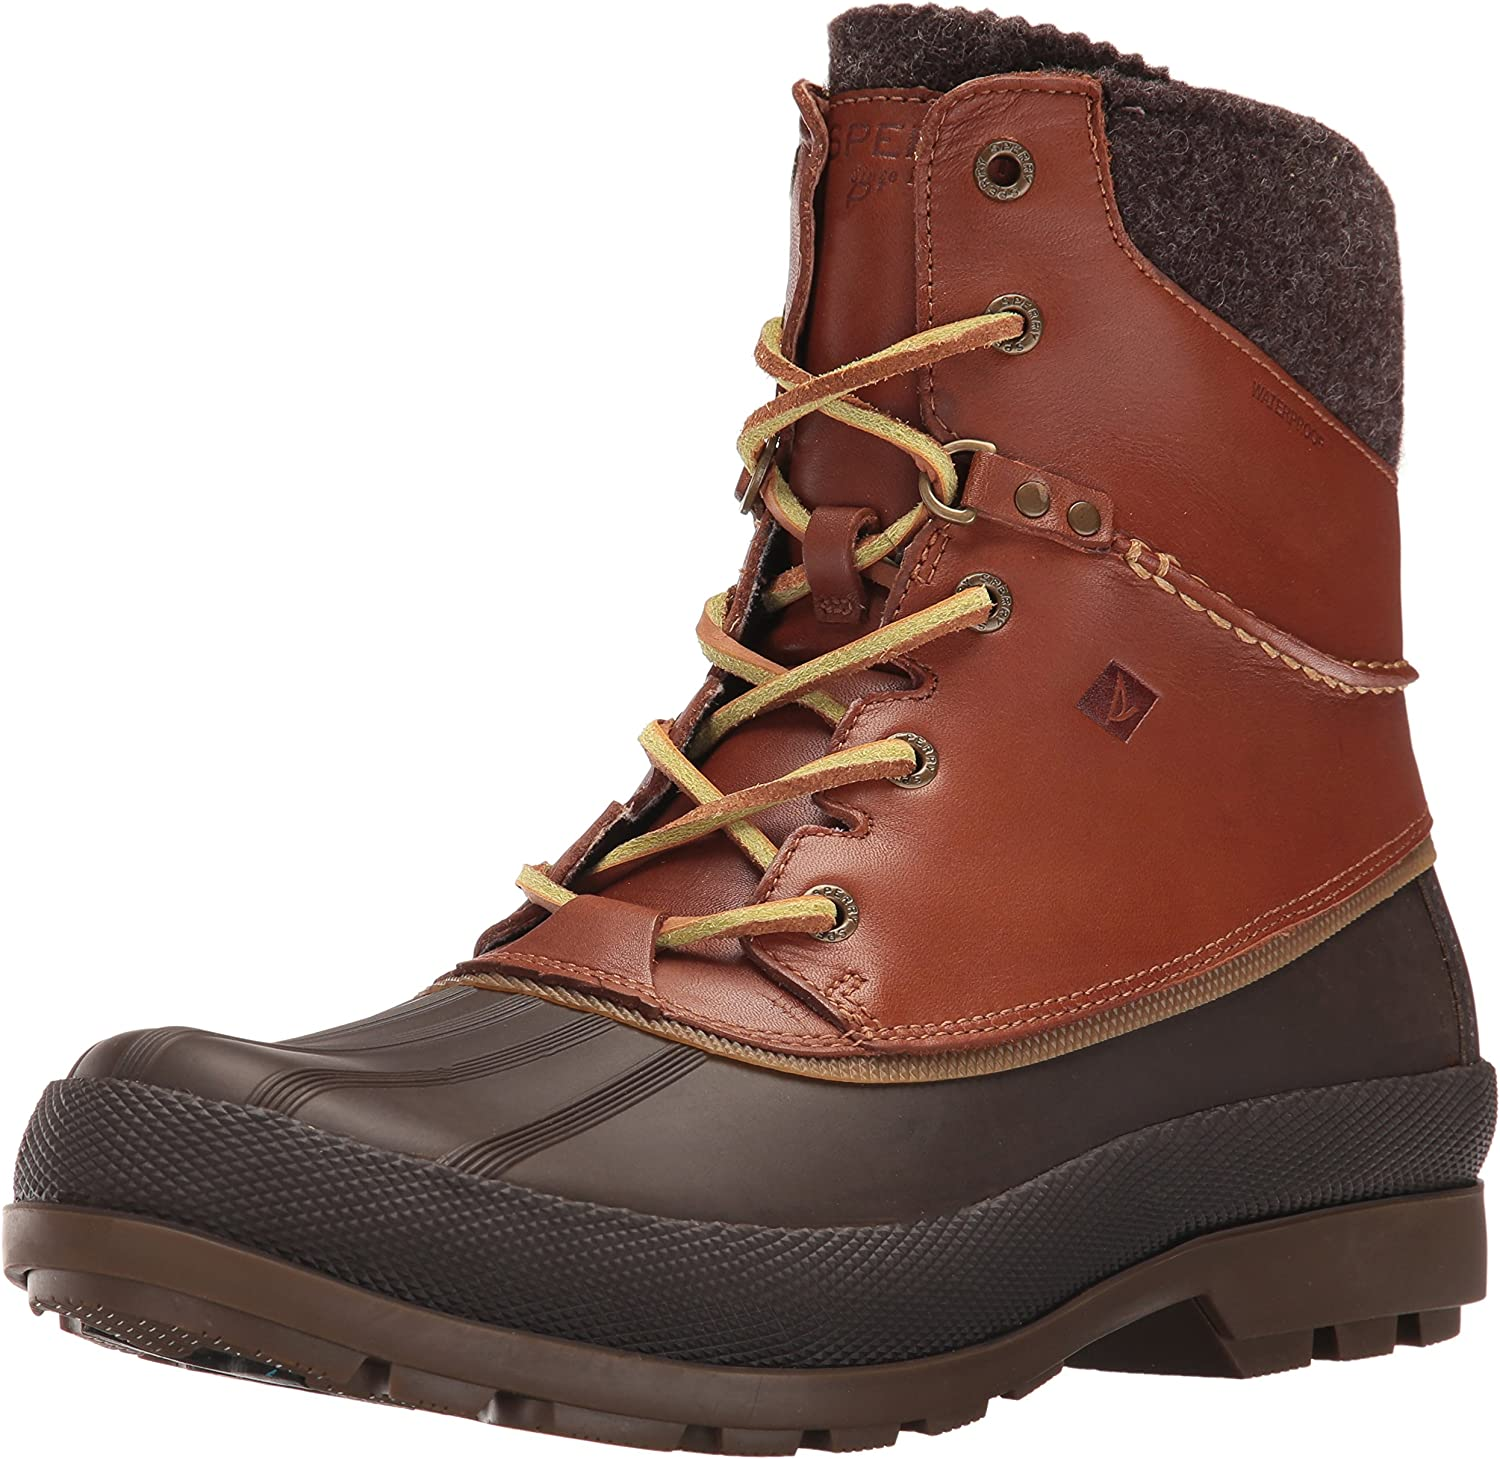 Sperry Top-Sider Men's Cold Bay Boot W Vibram Ankle